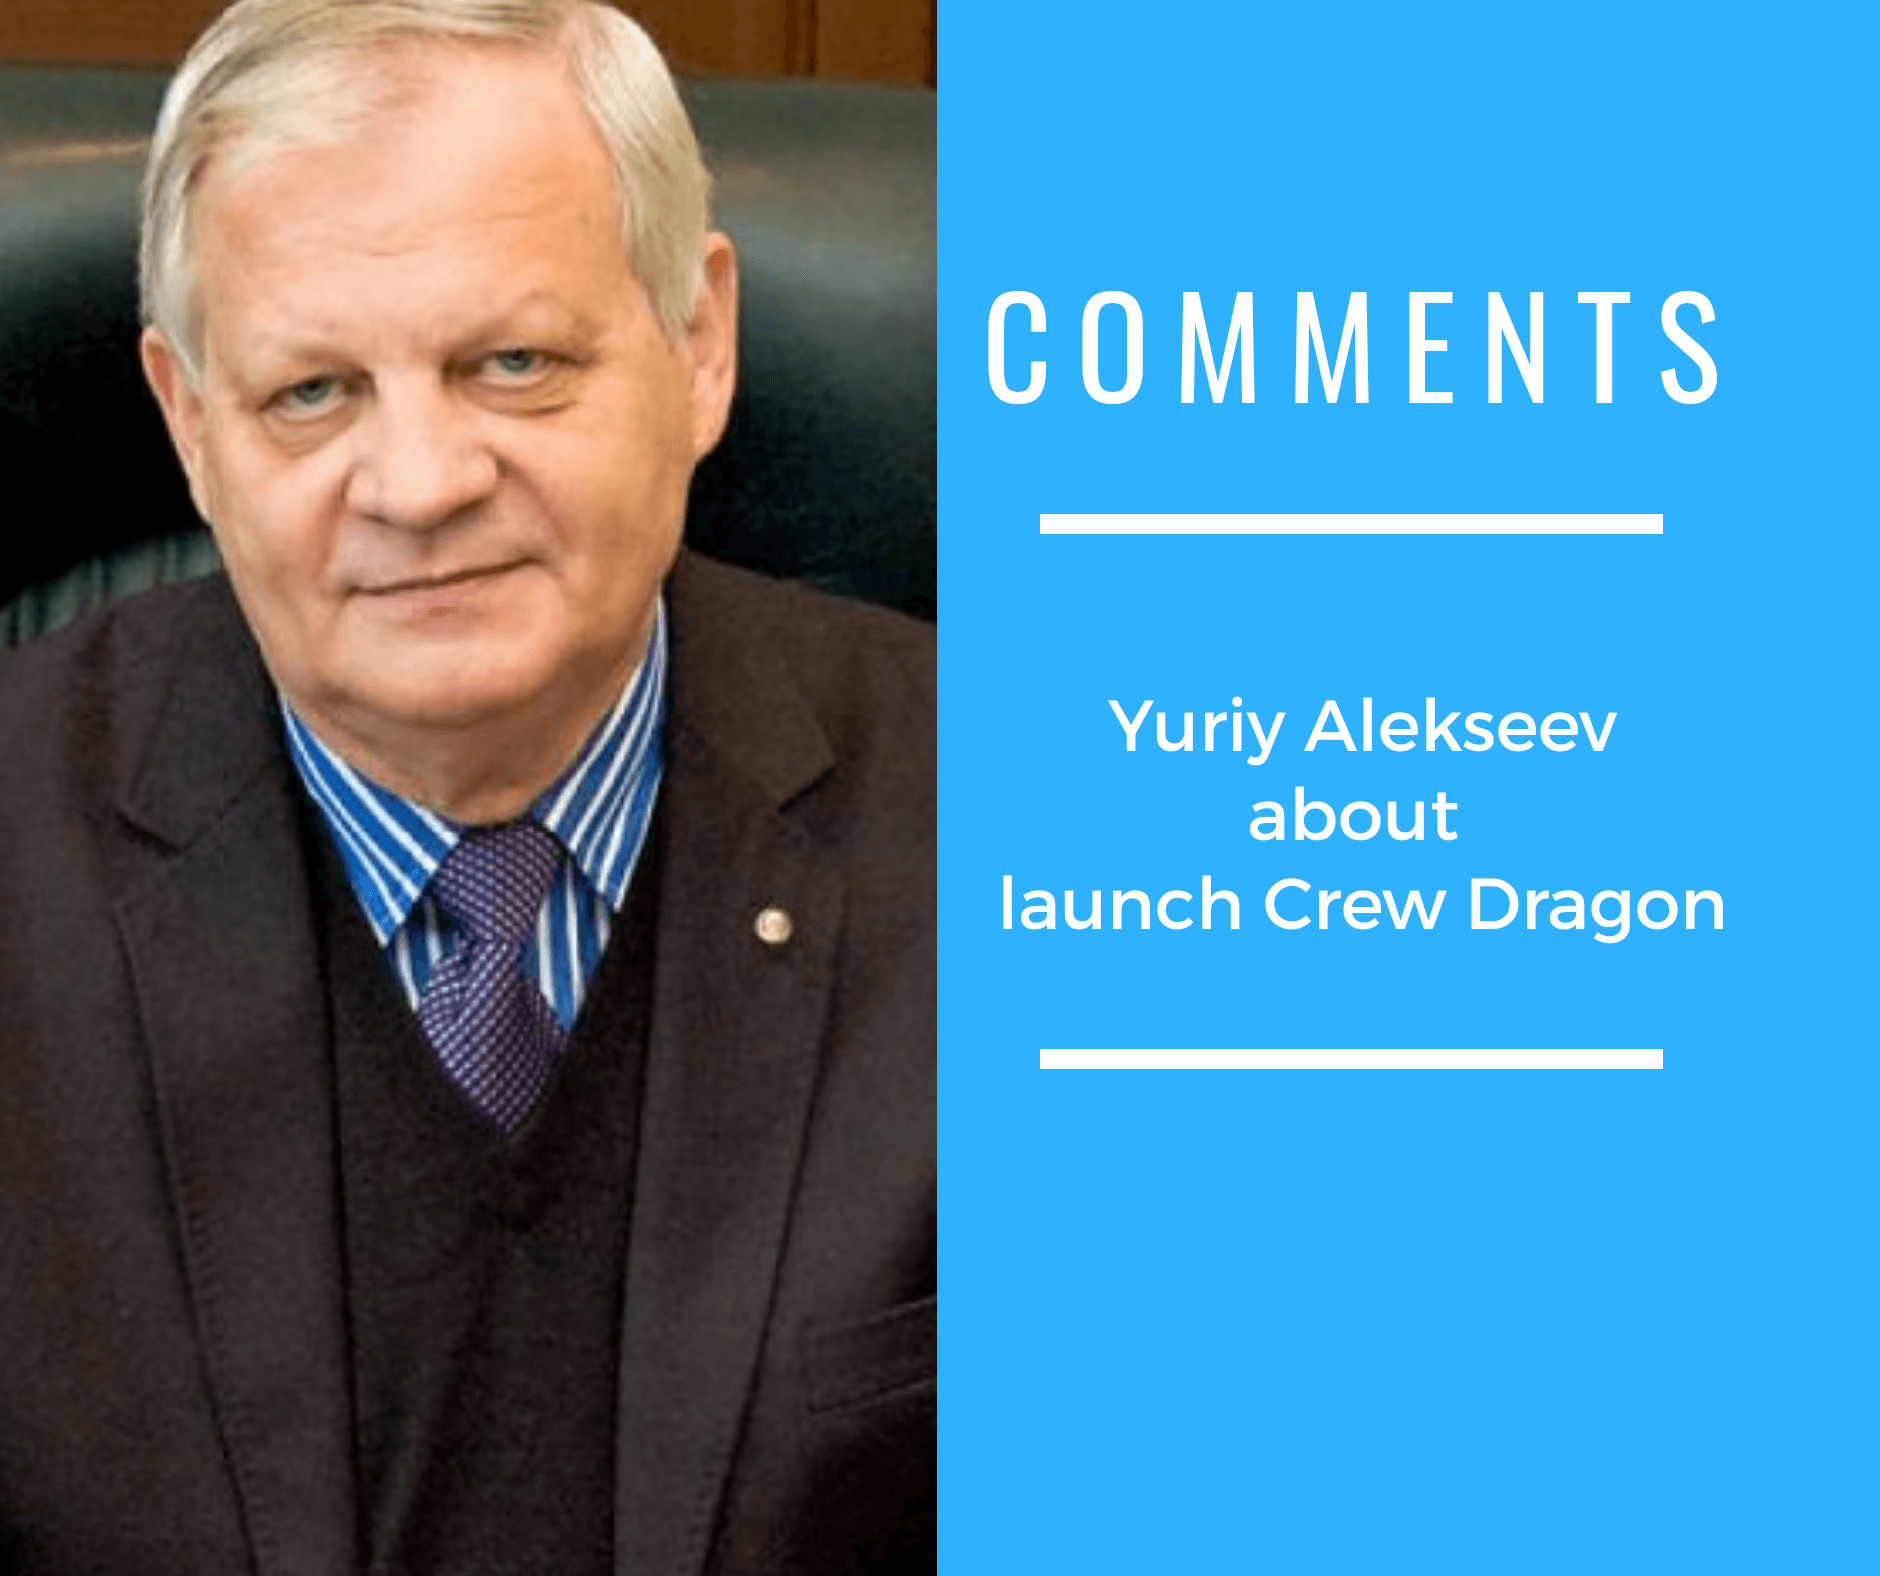 Yuriy Alekseev about the launch of Crew Dragon